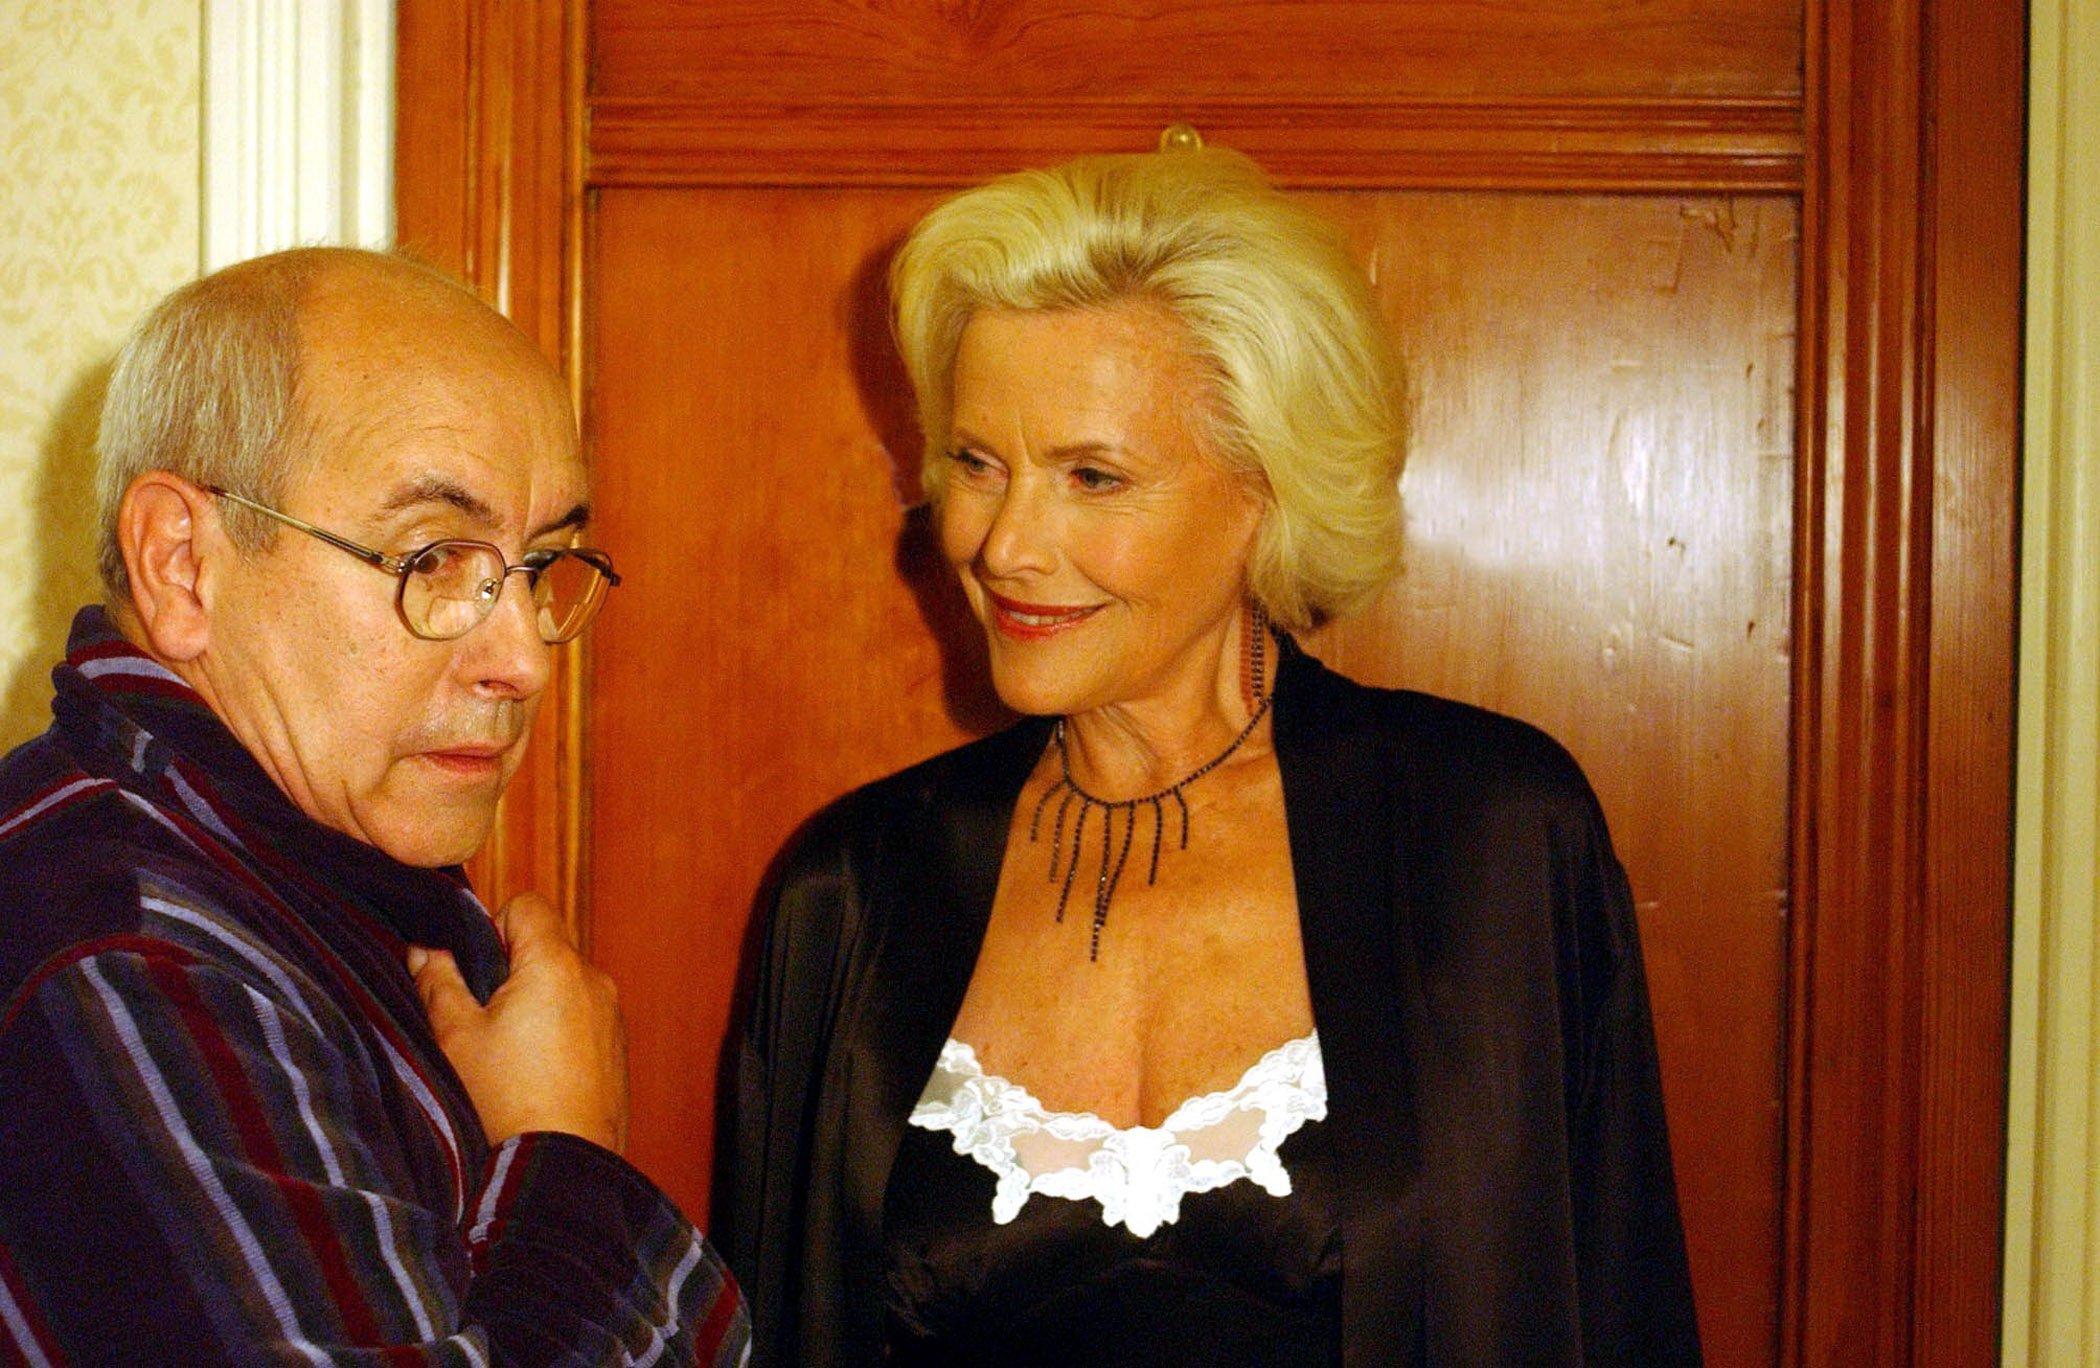 Editorial use only. Exclusive - Premium Rates Apply. Call your Account Manager for pricing. Mandatory Credit: Photo by ITV/REX/Shutterstock (726940cp) 'Coronation Street' TV - 2004 - Norris Cole [Malcolm Hebden] and Rula Romanoff [Honor Blackman]. ITV ARCHIVE